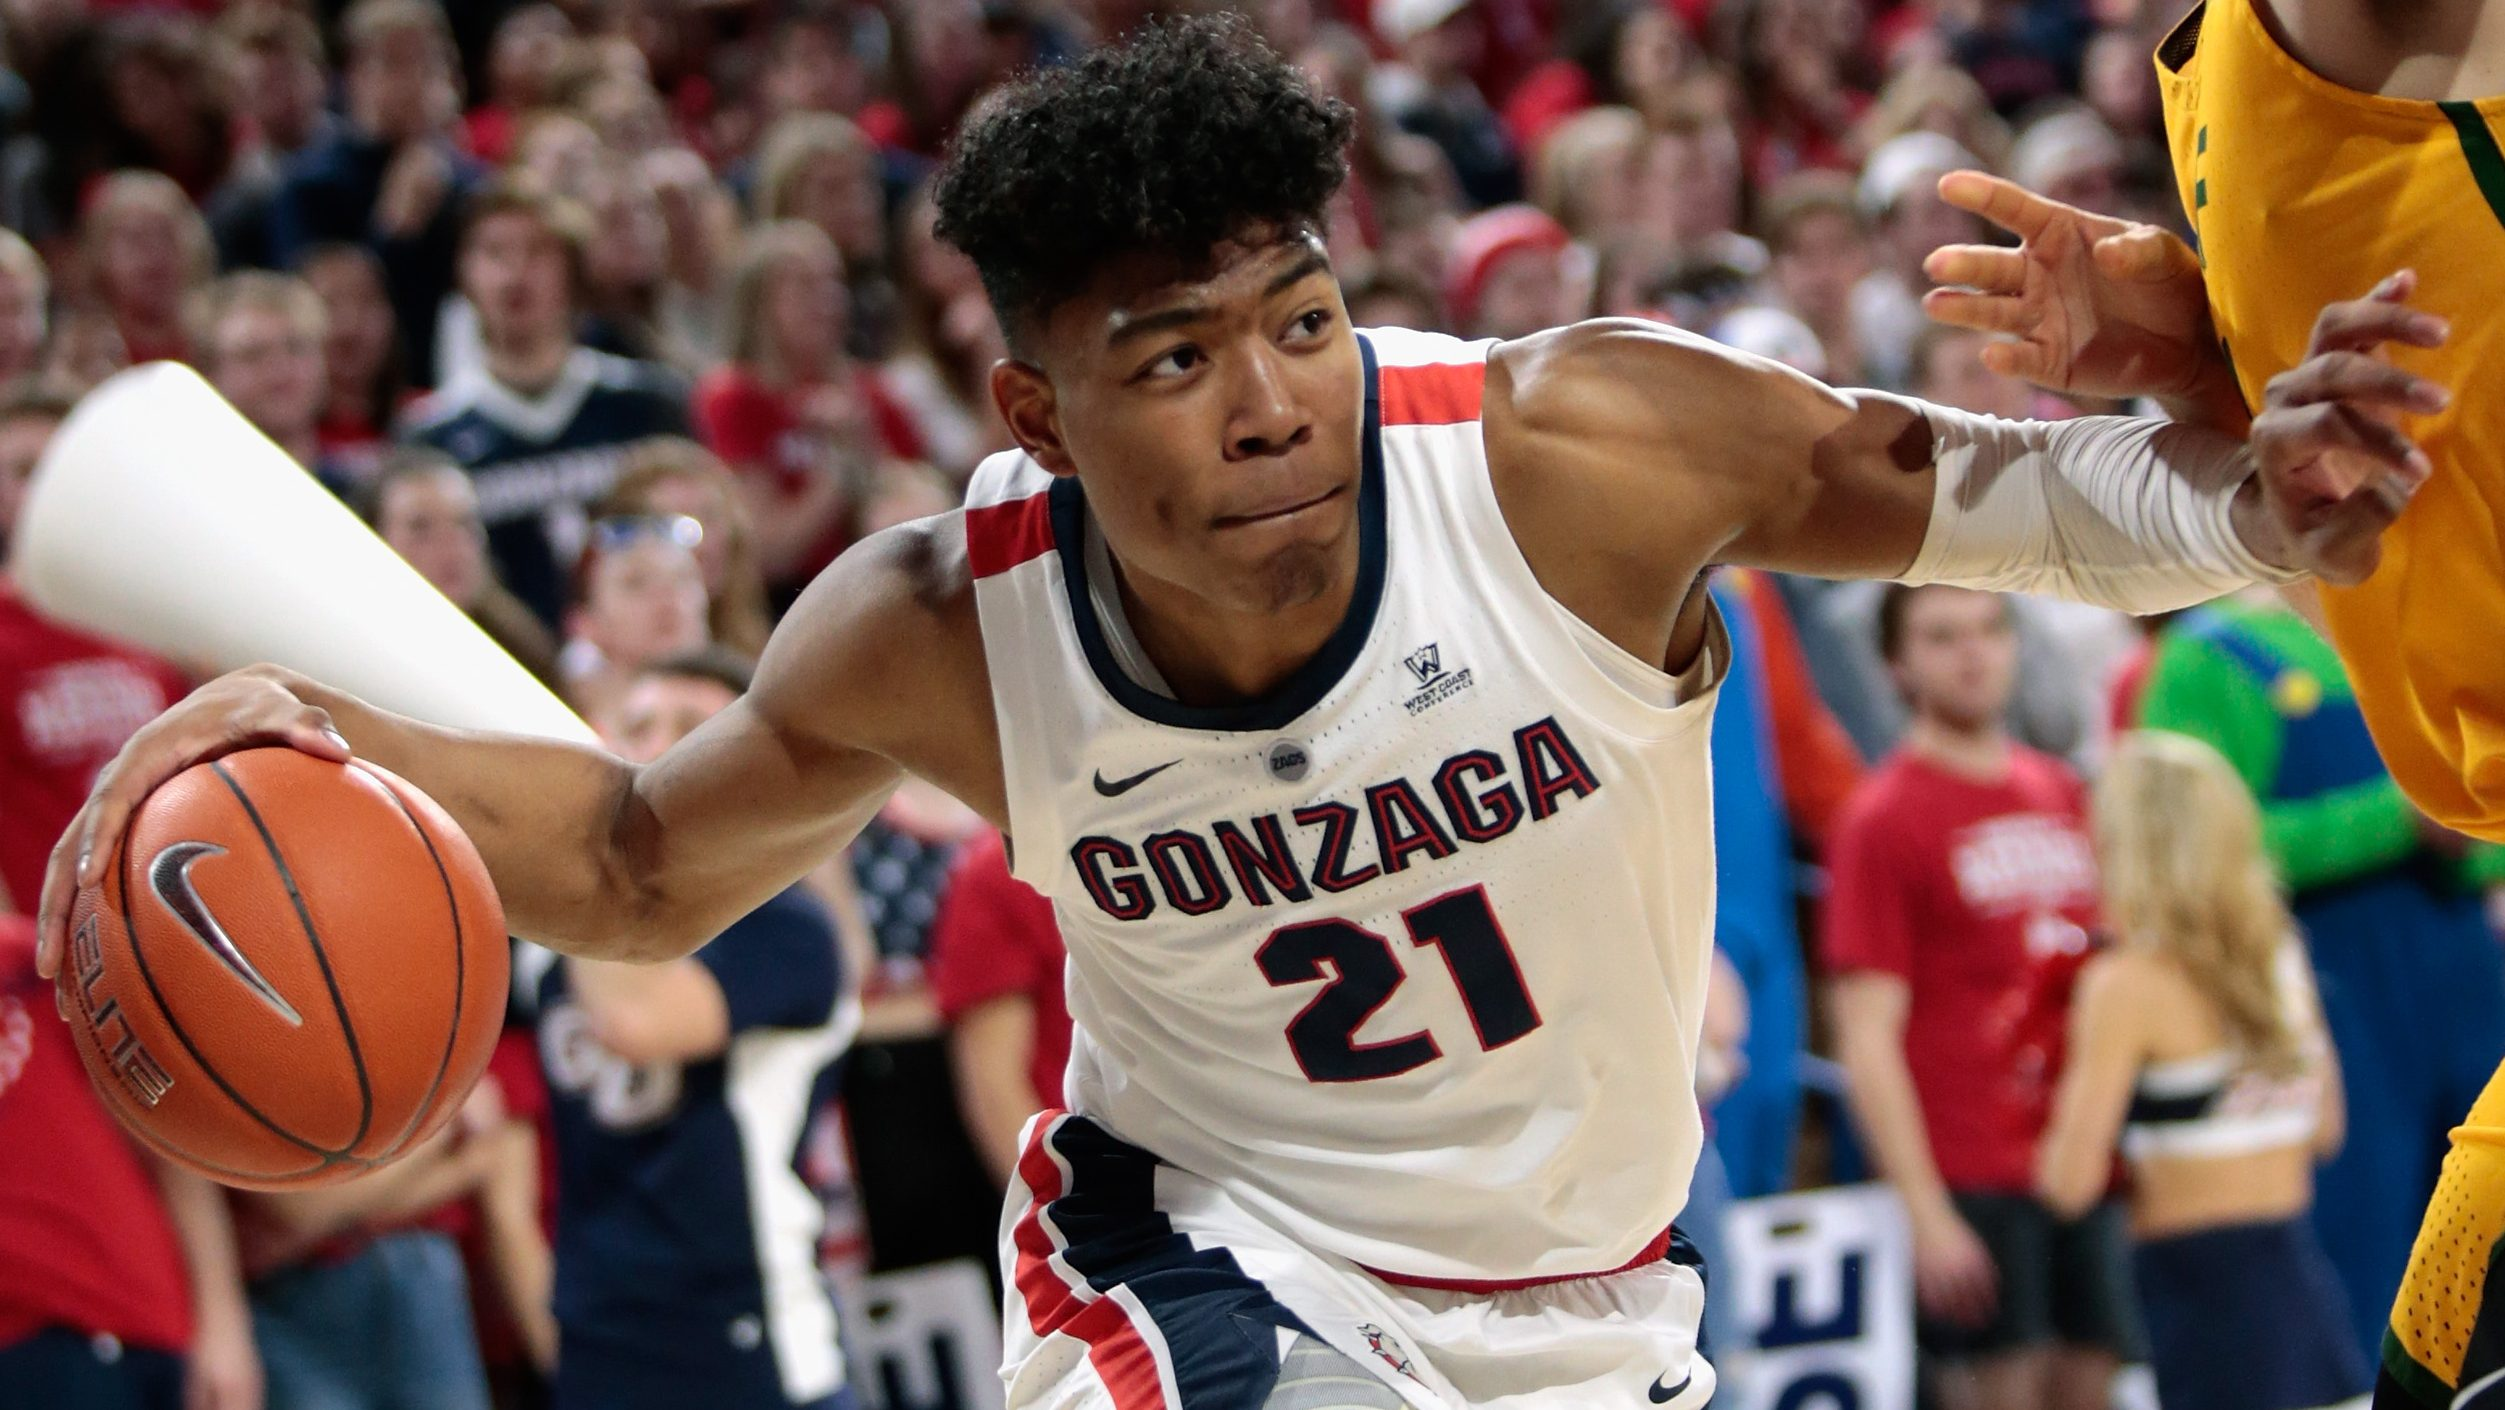 943709170f84 Top NBA prospect Rui Hachimura wants to inspire biracial athletes in Japan